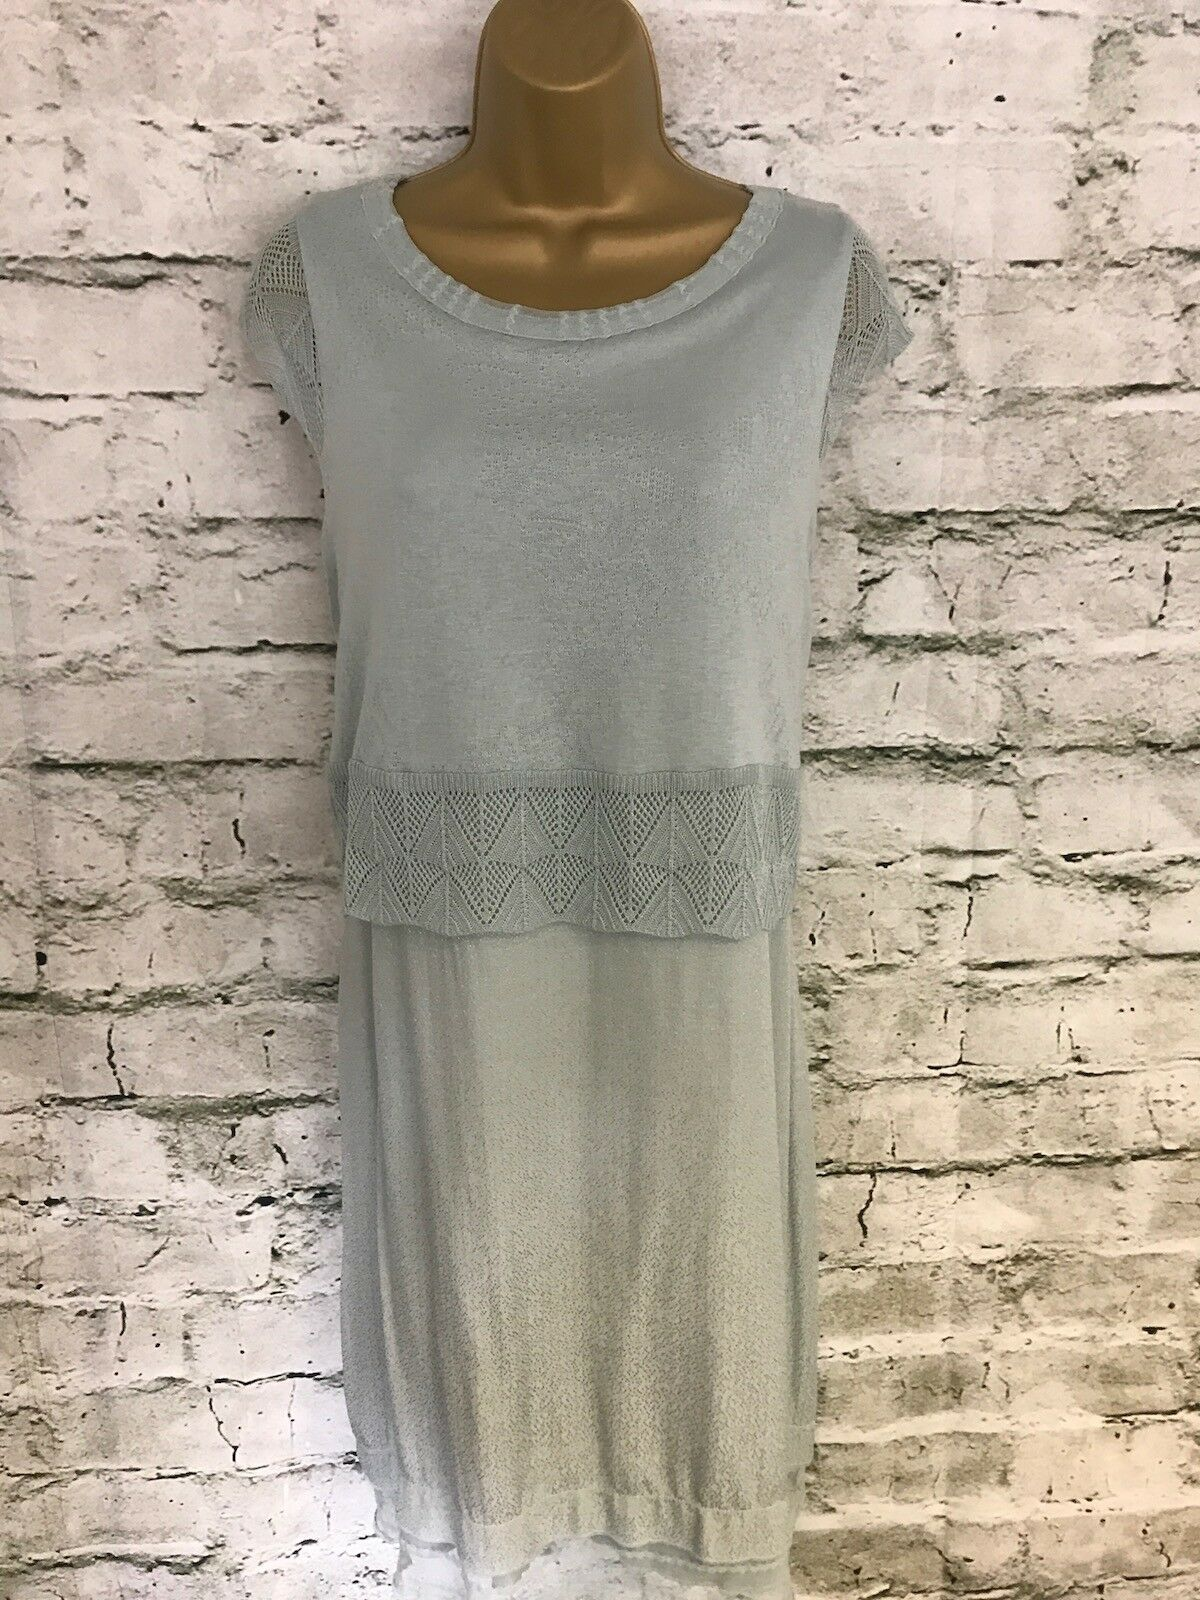 Mado et Les Autres Ladies Pastel Green Fine Knit Dress Size 42 RRP .95